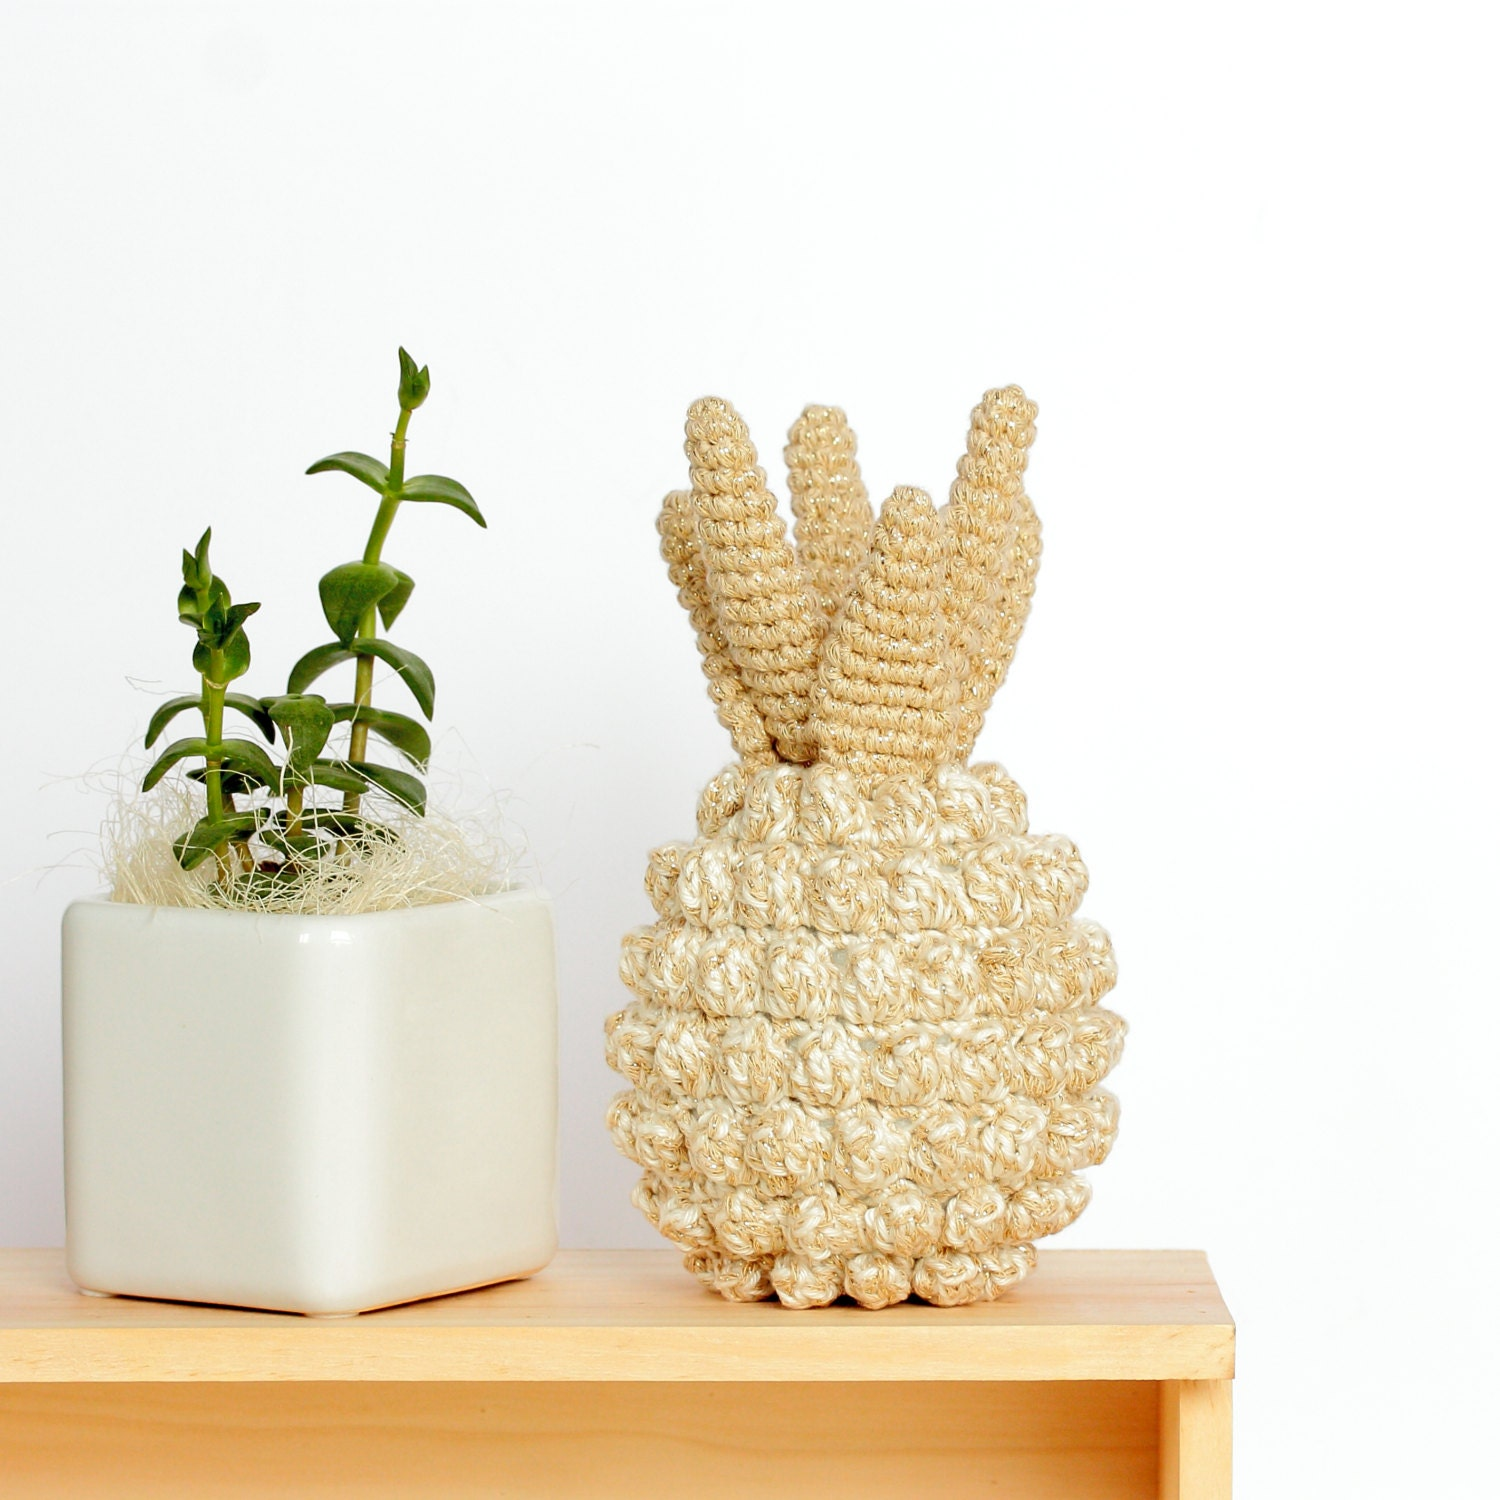 Pineapple Home Decor Crochet Pineapple Decor Pineapple